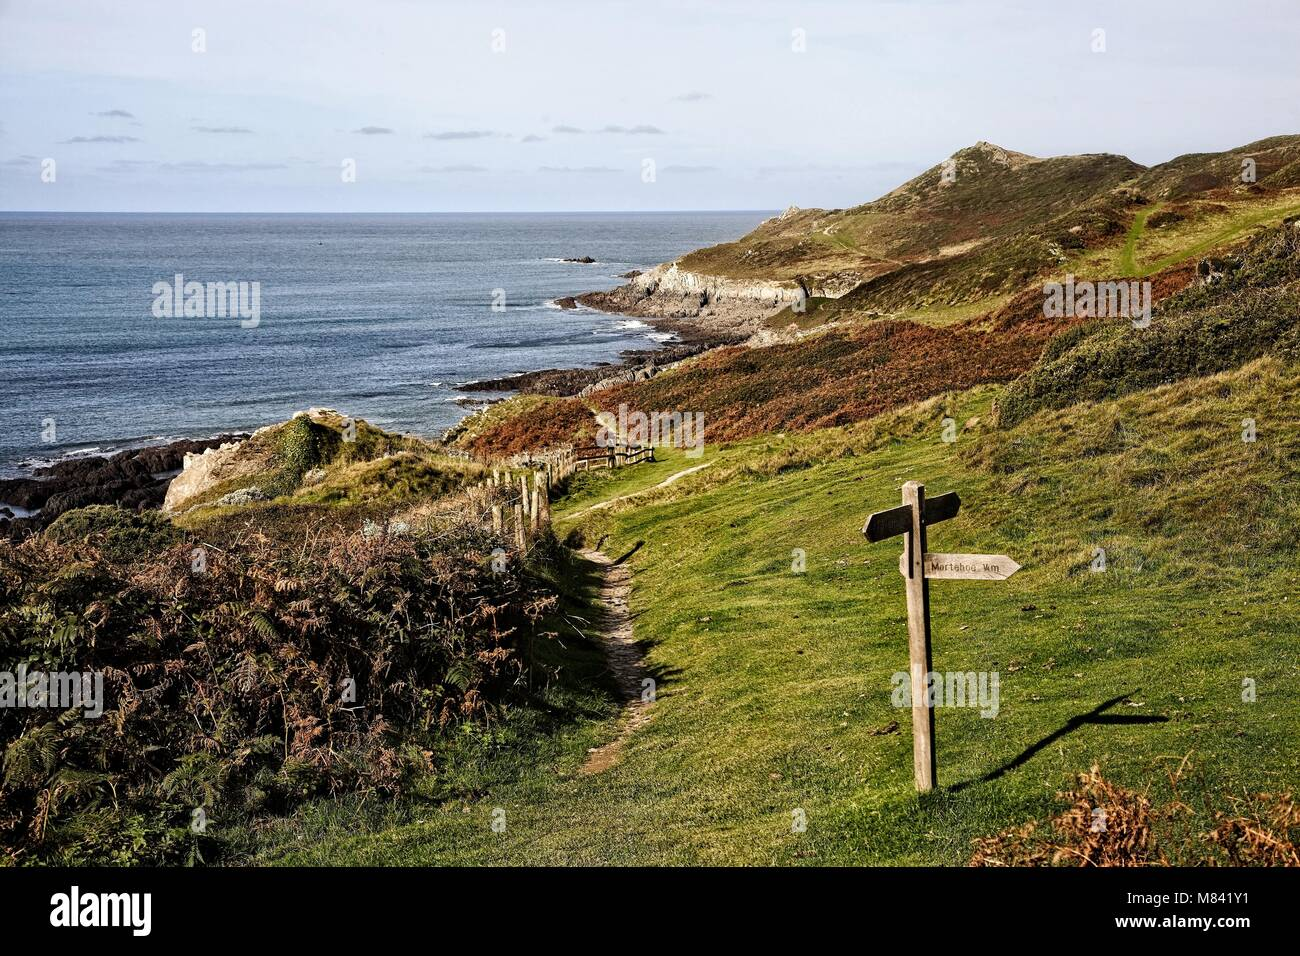 COASTAL FOOTPATH WALK AROUND MORTE POINT NEAR WOOLACOMBE DEVON ENGLAND - Stock Image